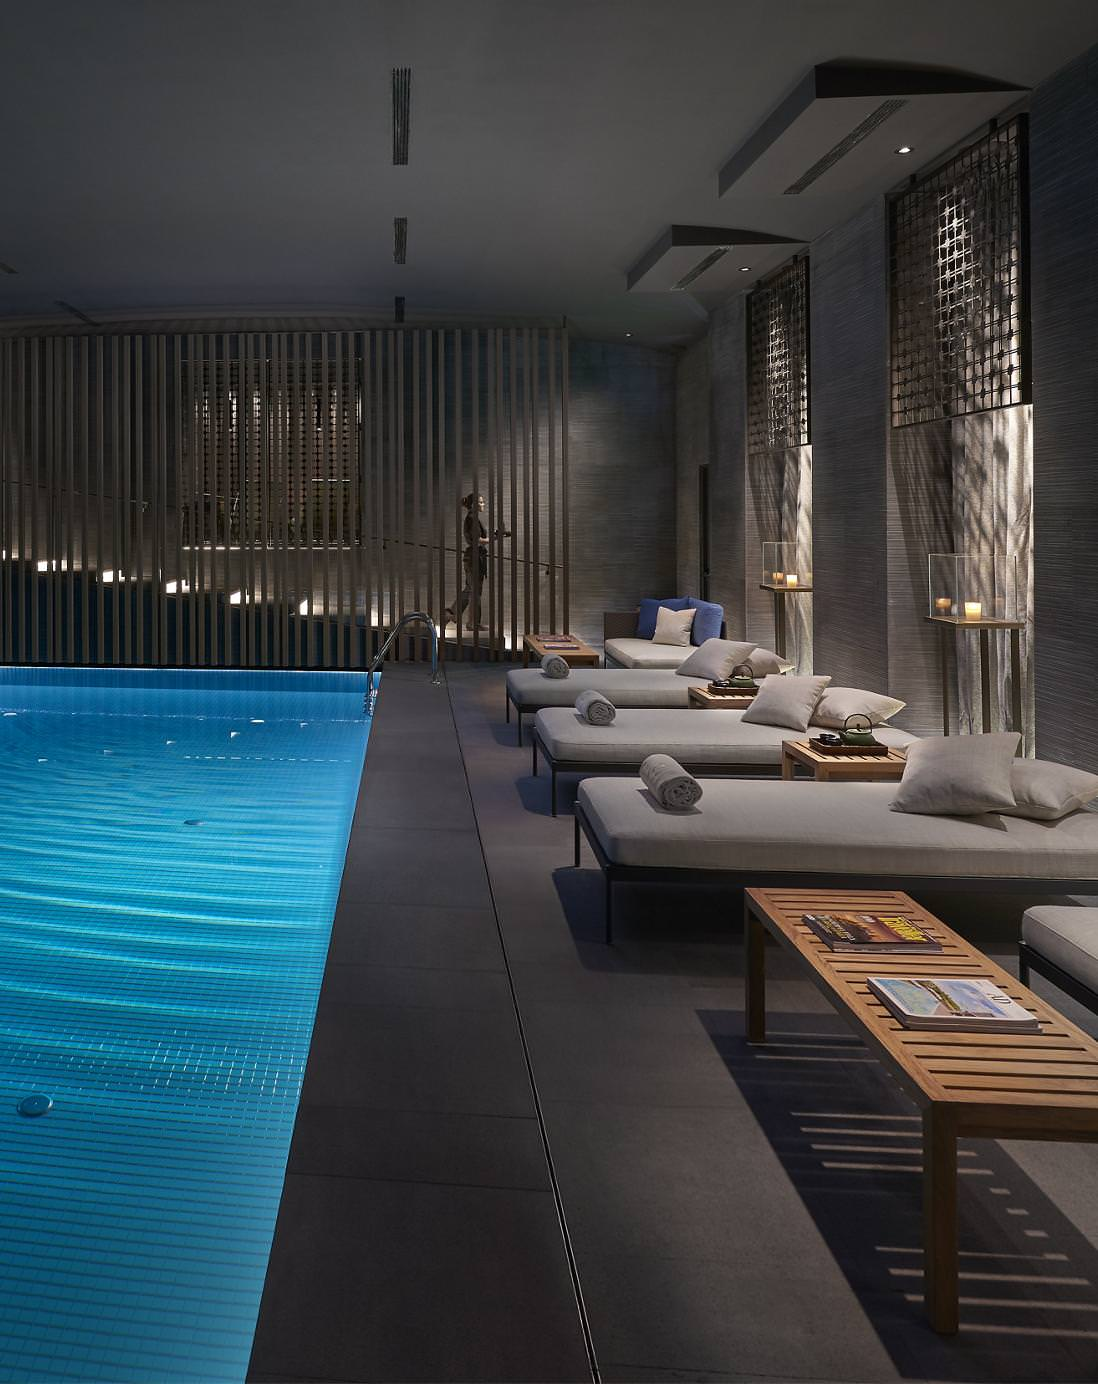 milan-luxury-spa-pool-01